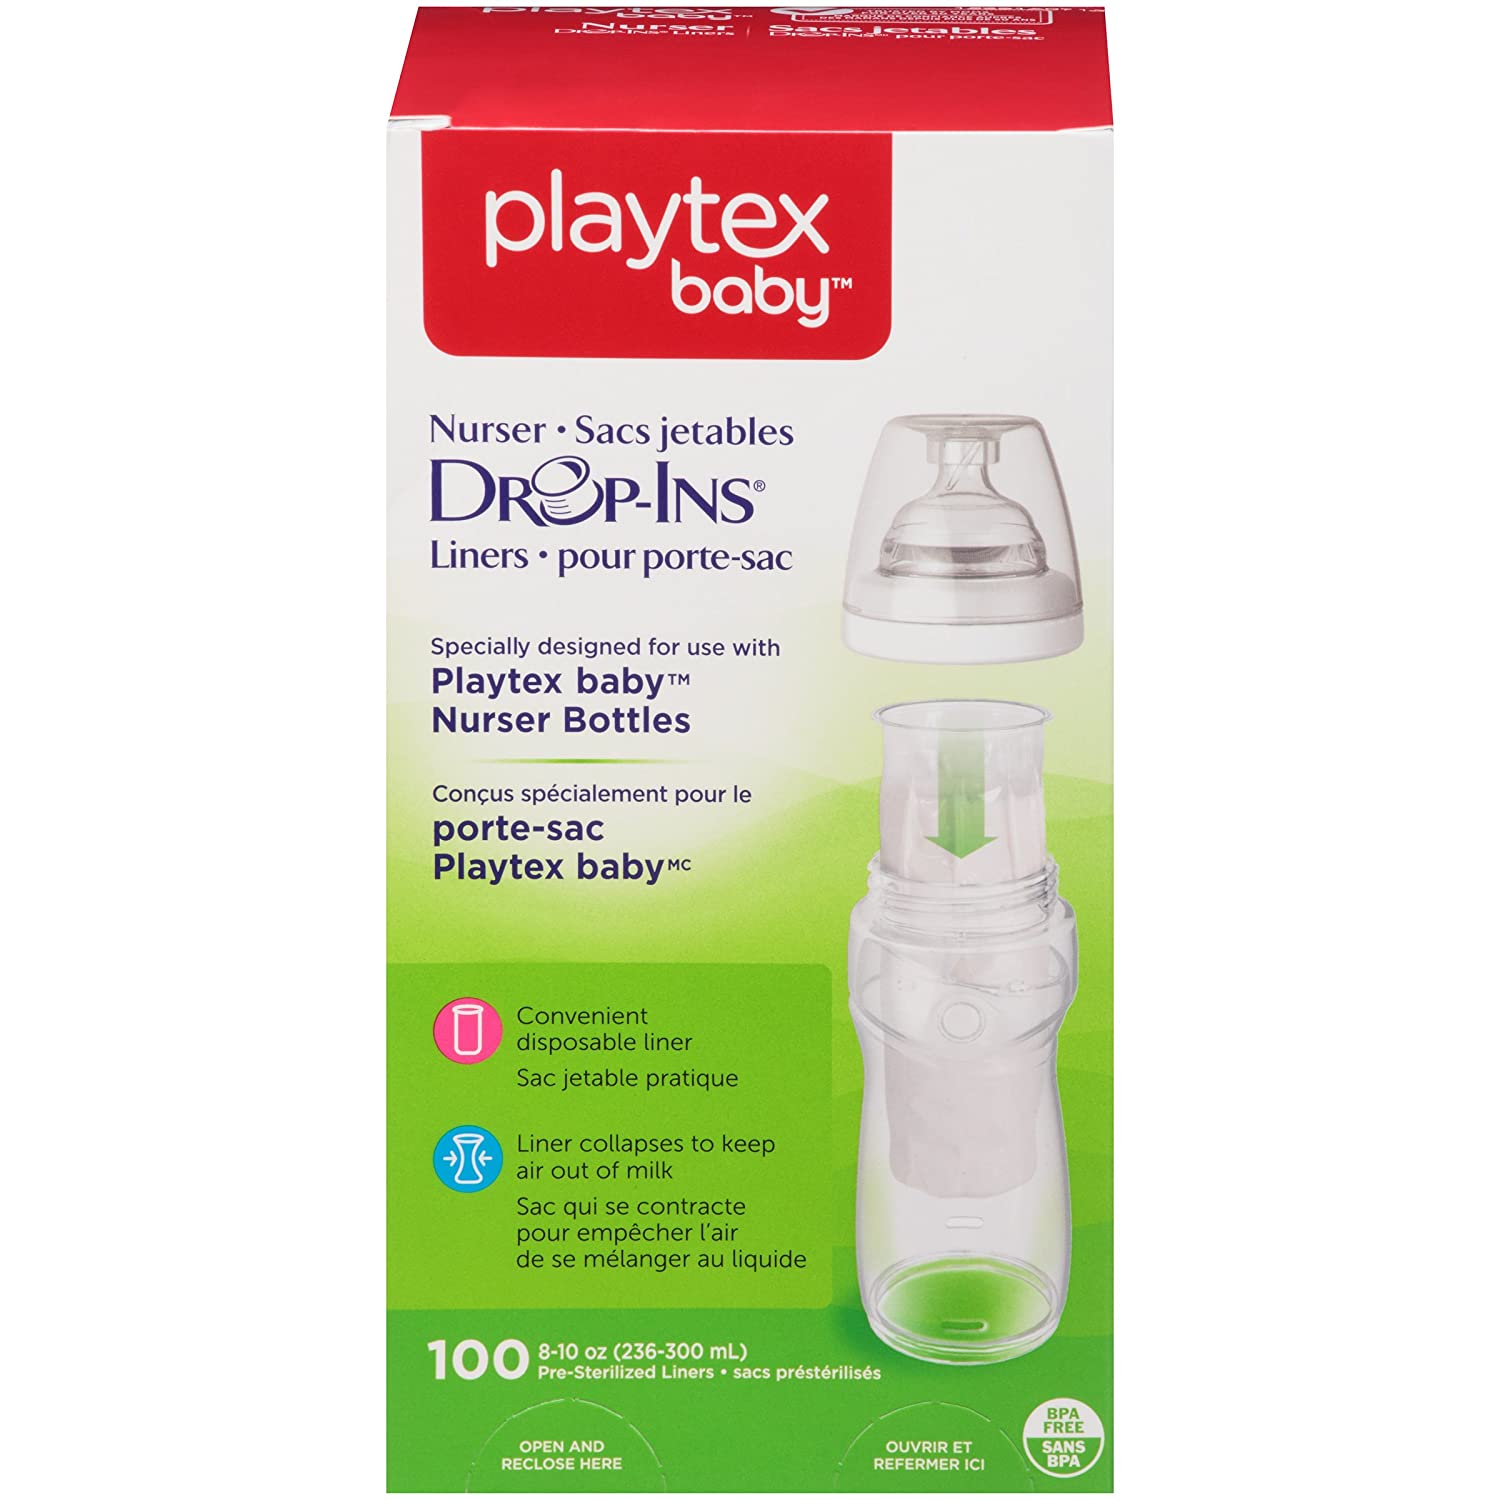 Playtex Baby Nurser Drop-Ins Baby Bottle Disposable Liners, Closer to Breastfeeding, 4 Ounce - 100 Count 5761